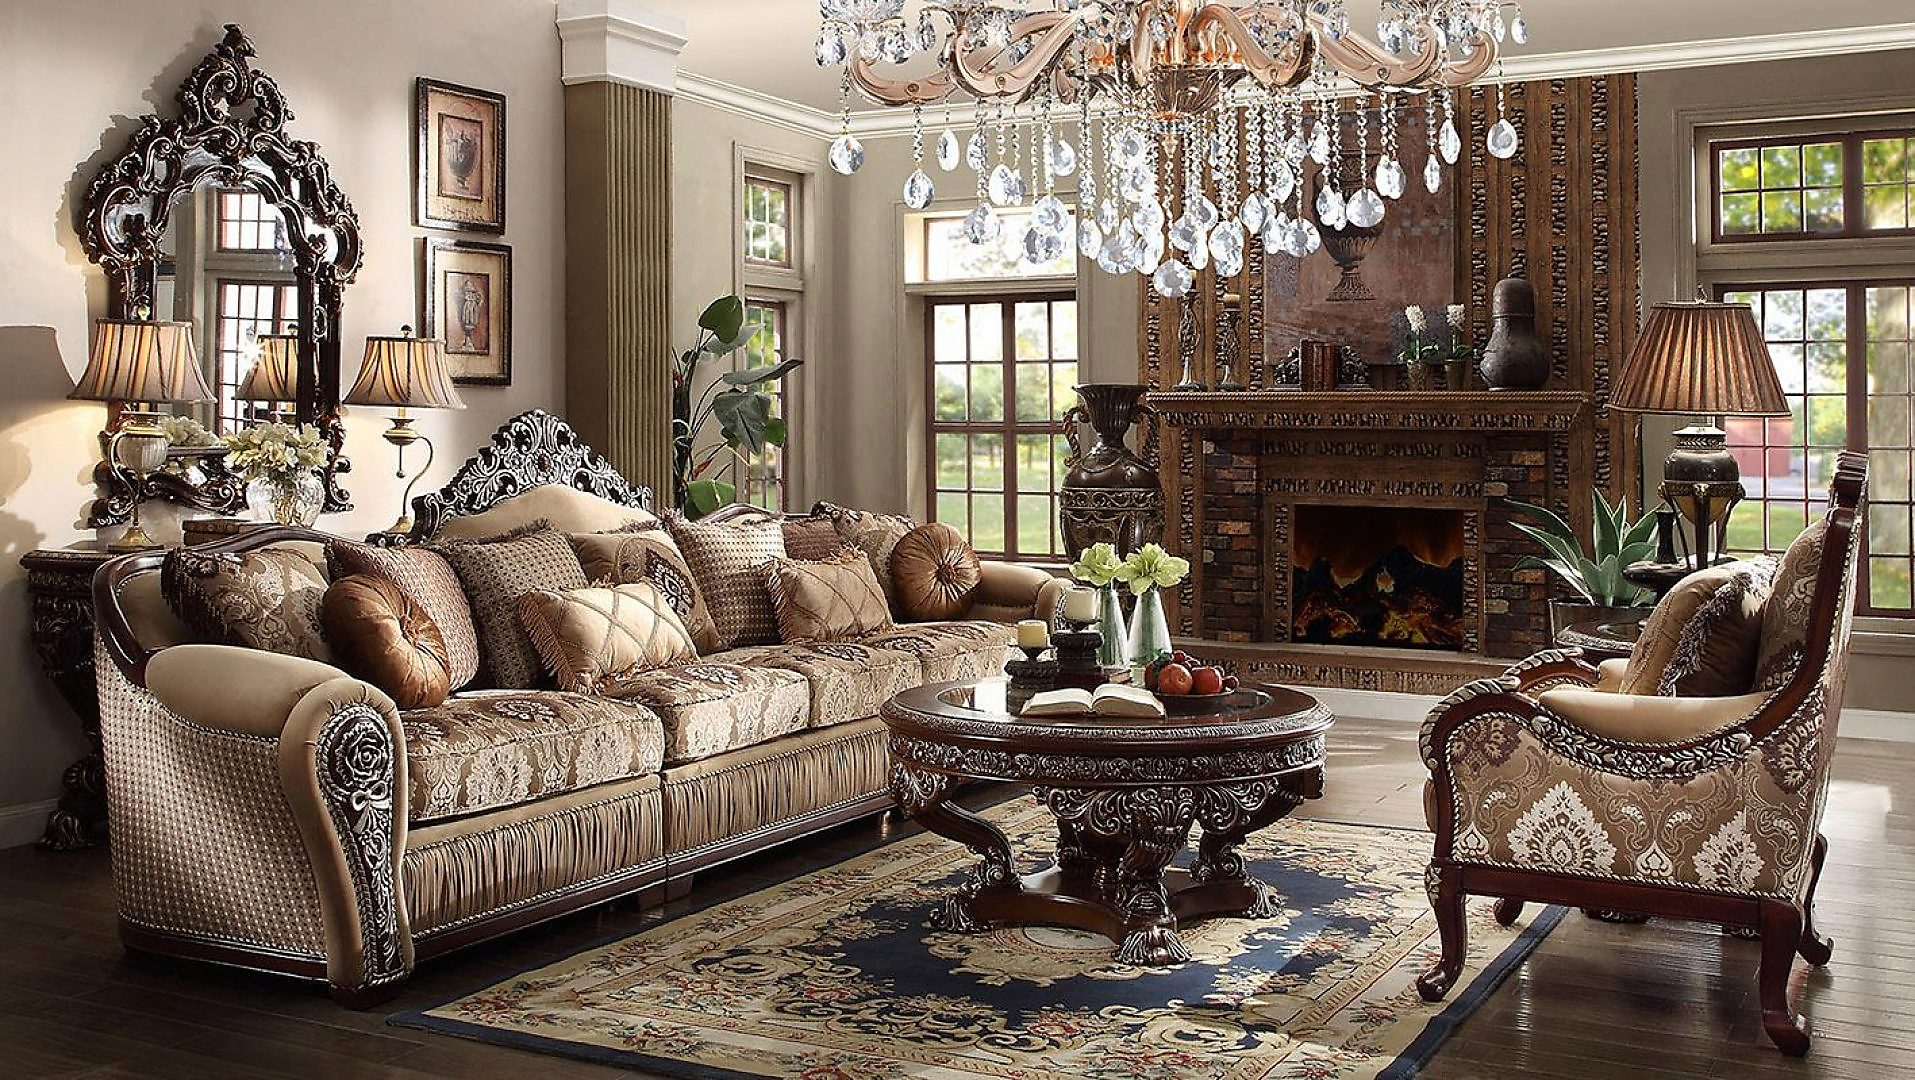 Traditional HD-1632 Sectional Sofa Set 4Pcs by Homey Design